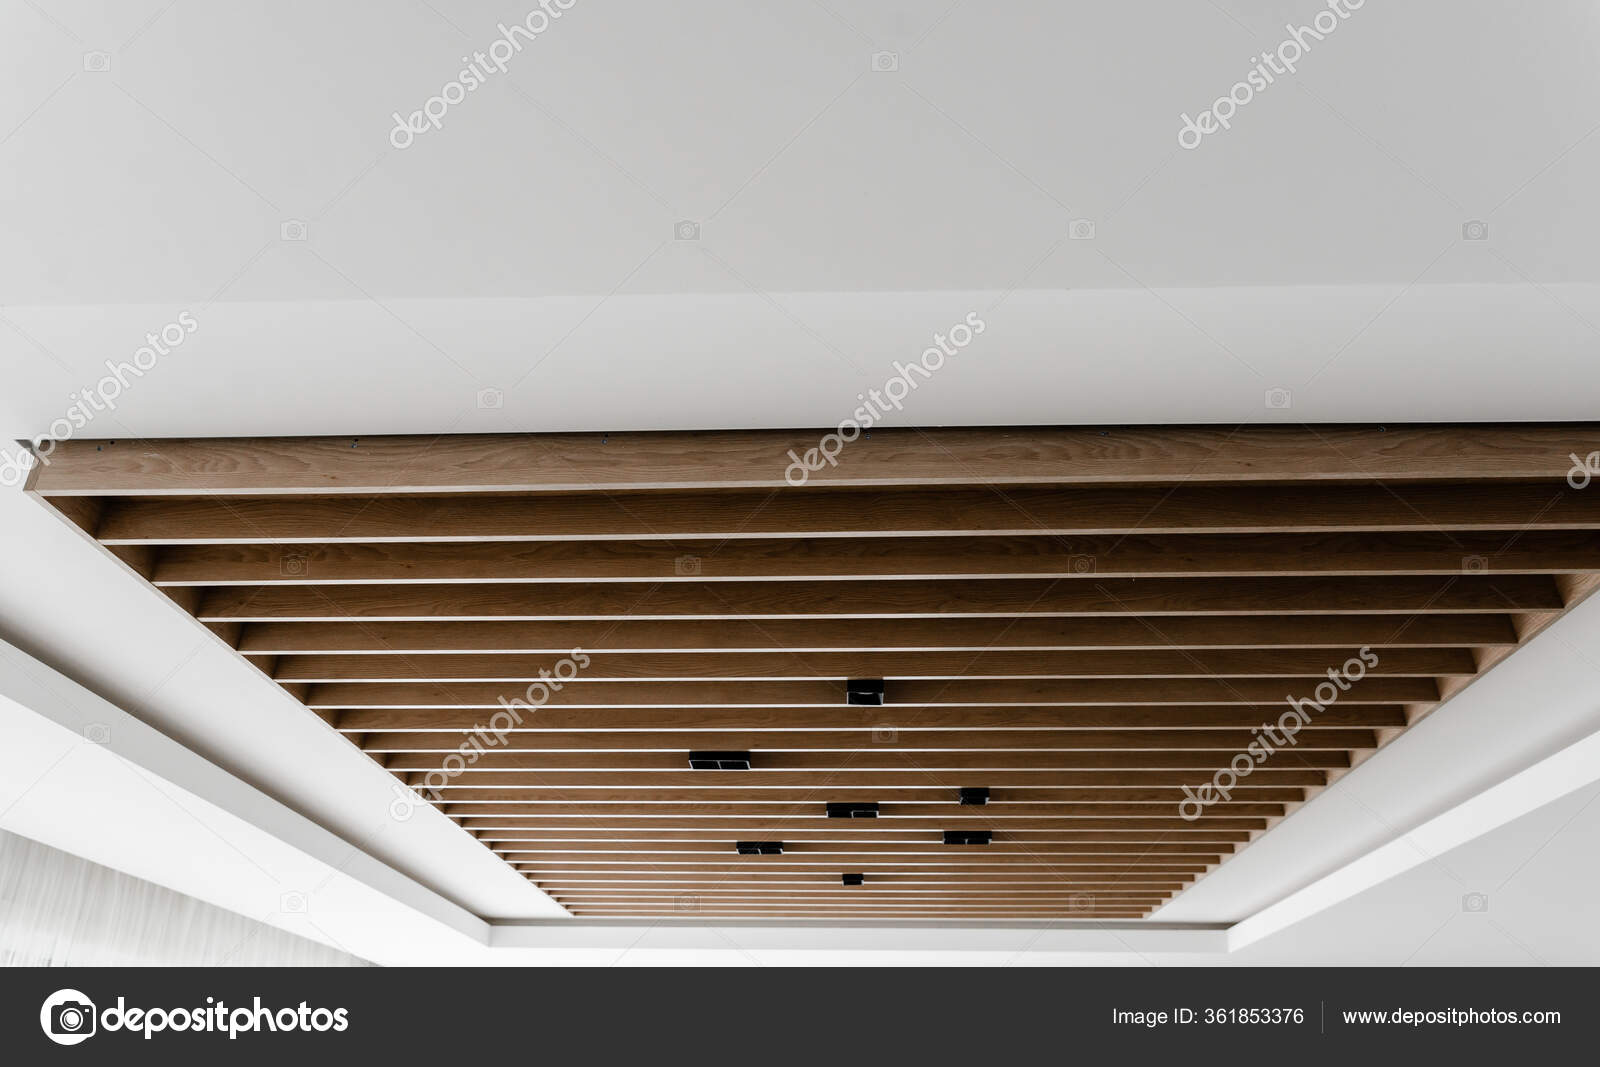 Creative Ceiling Wood Paneling Modern Wooden Suspended Ceiling Black Loft Stock Photo Image By C Vgunko95 Gmail Com 361853376